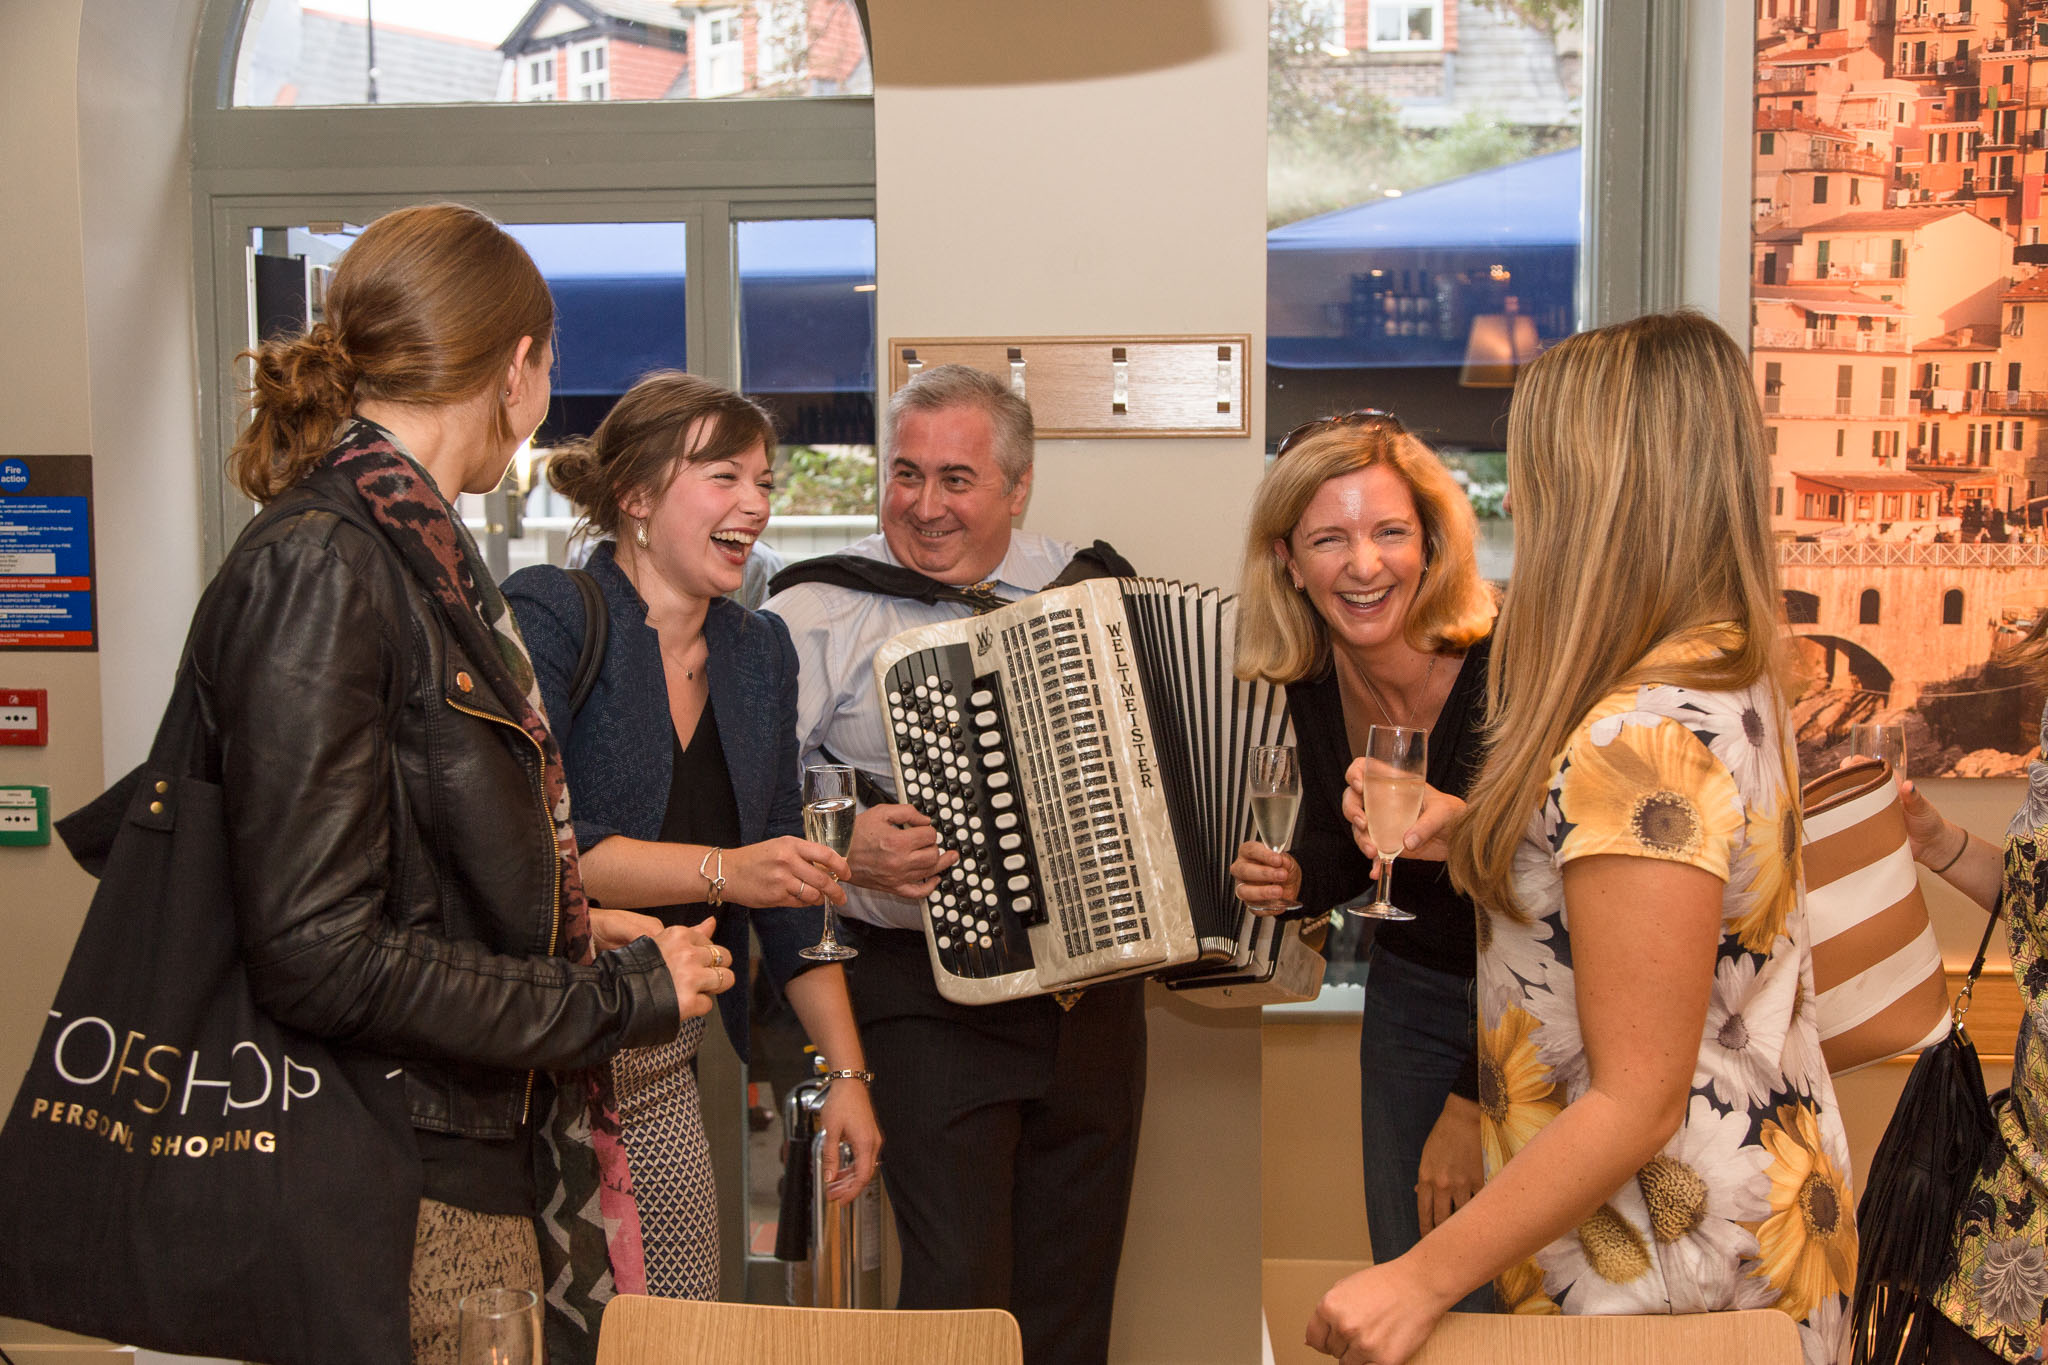 Special Event Photography Carluccio's opening with guests enjoy music